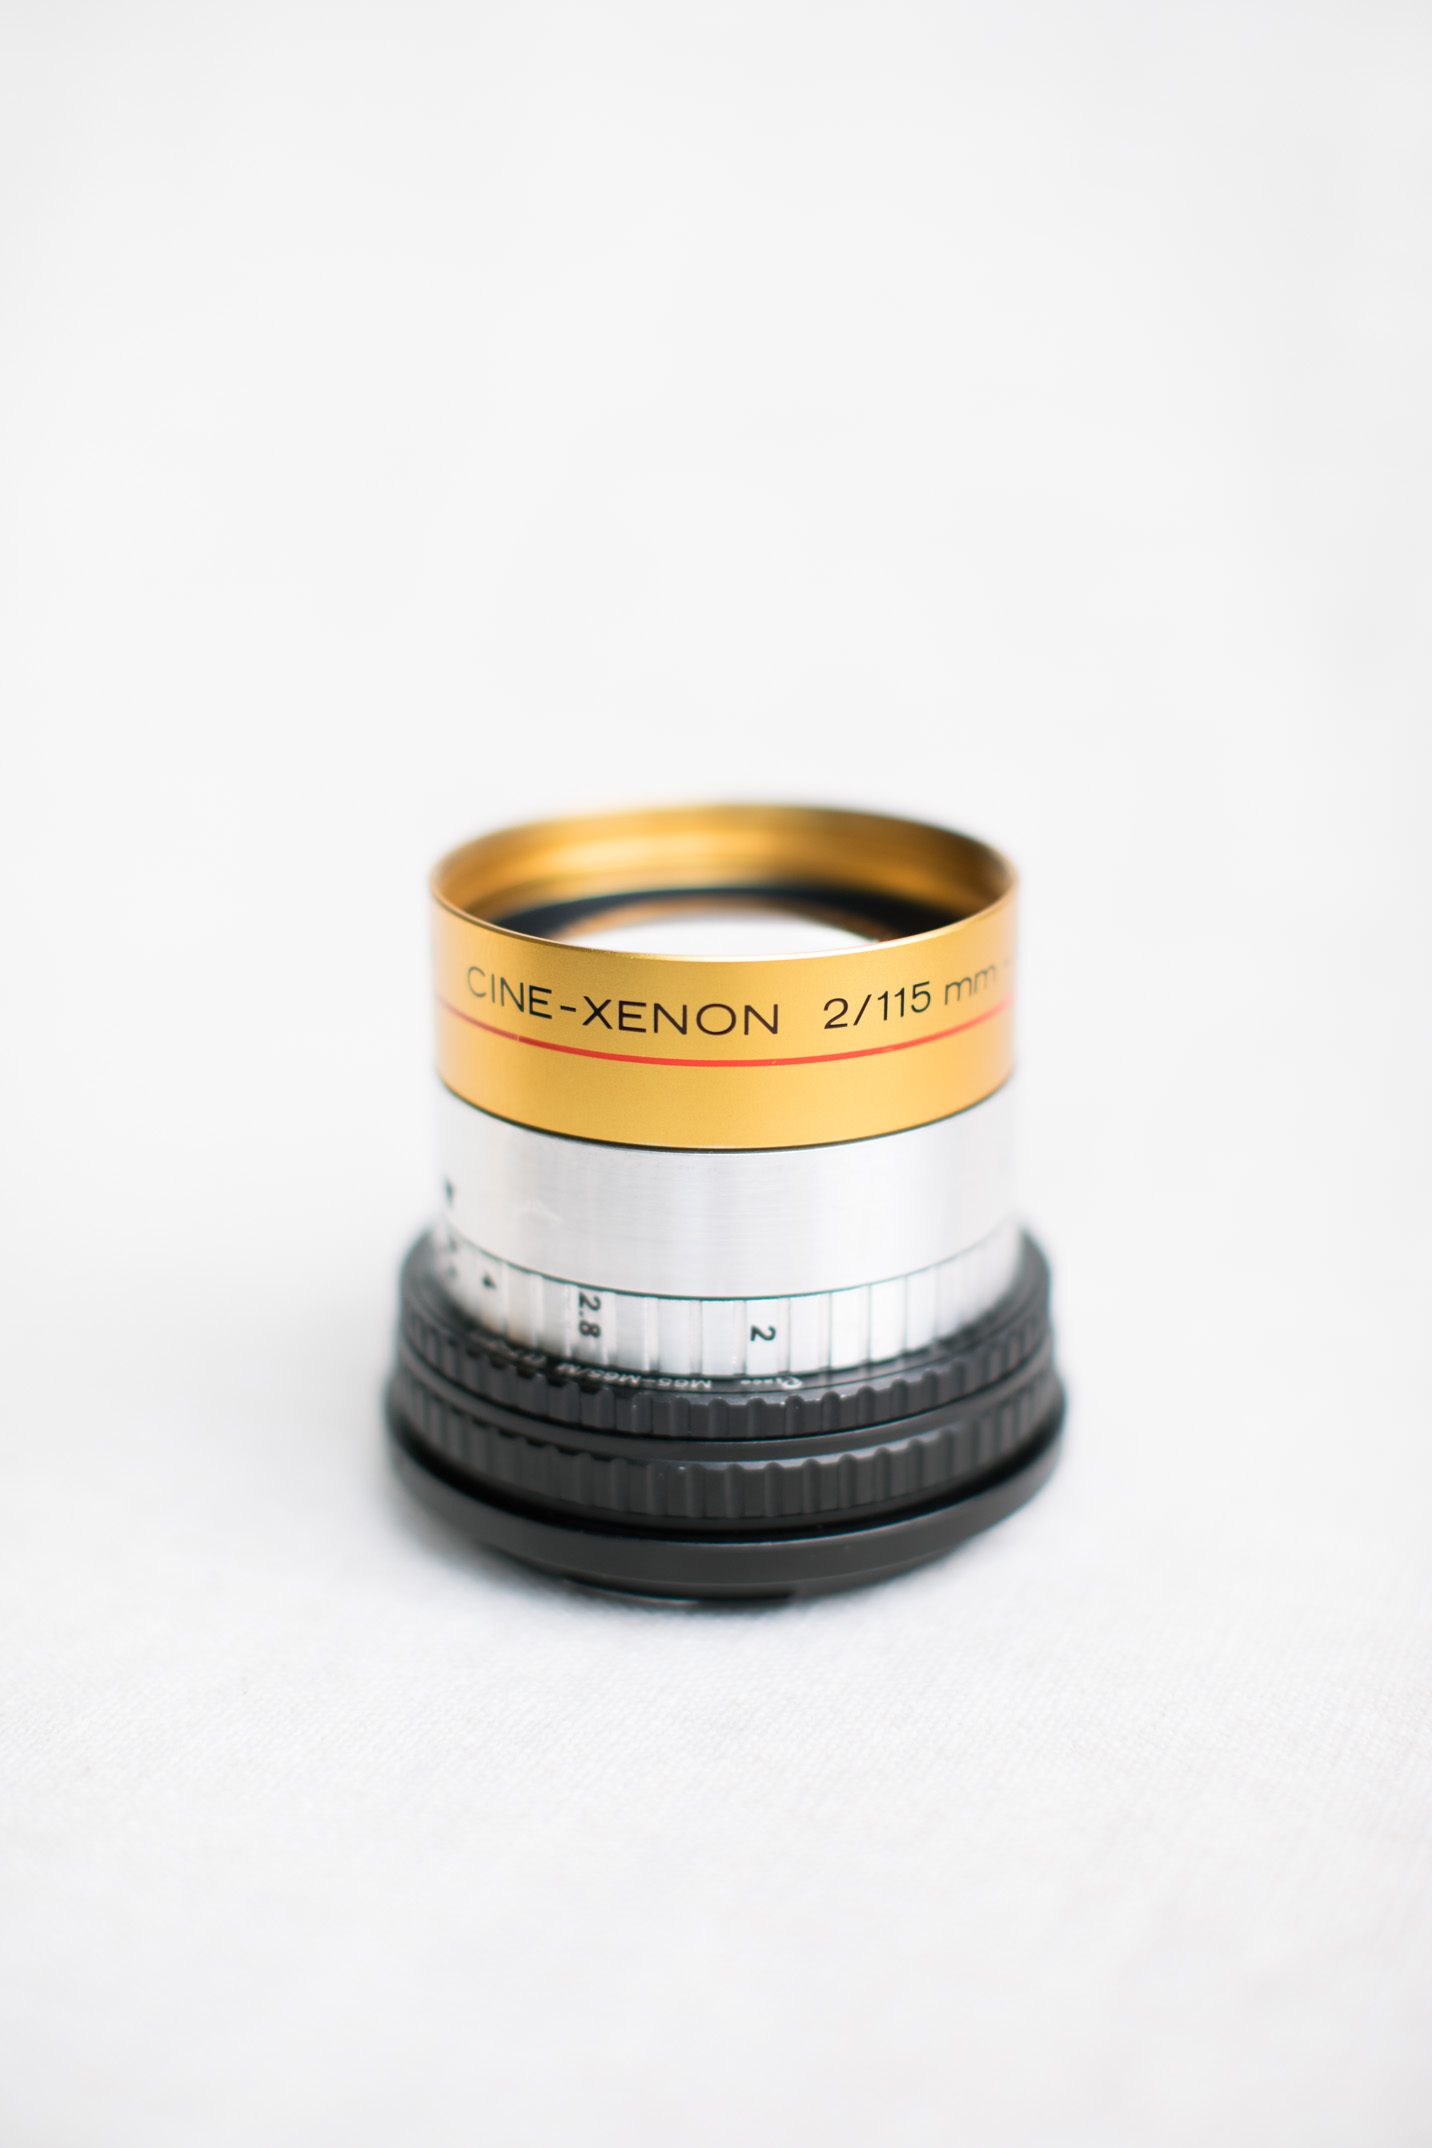 Schneider Cine-Xenon 115mm f/2 lens with variable aperture for Pentax 67